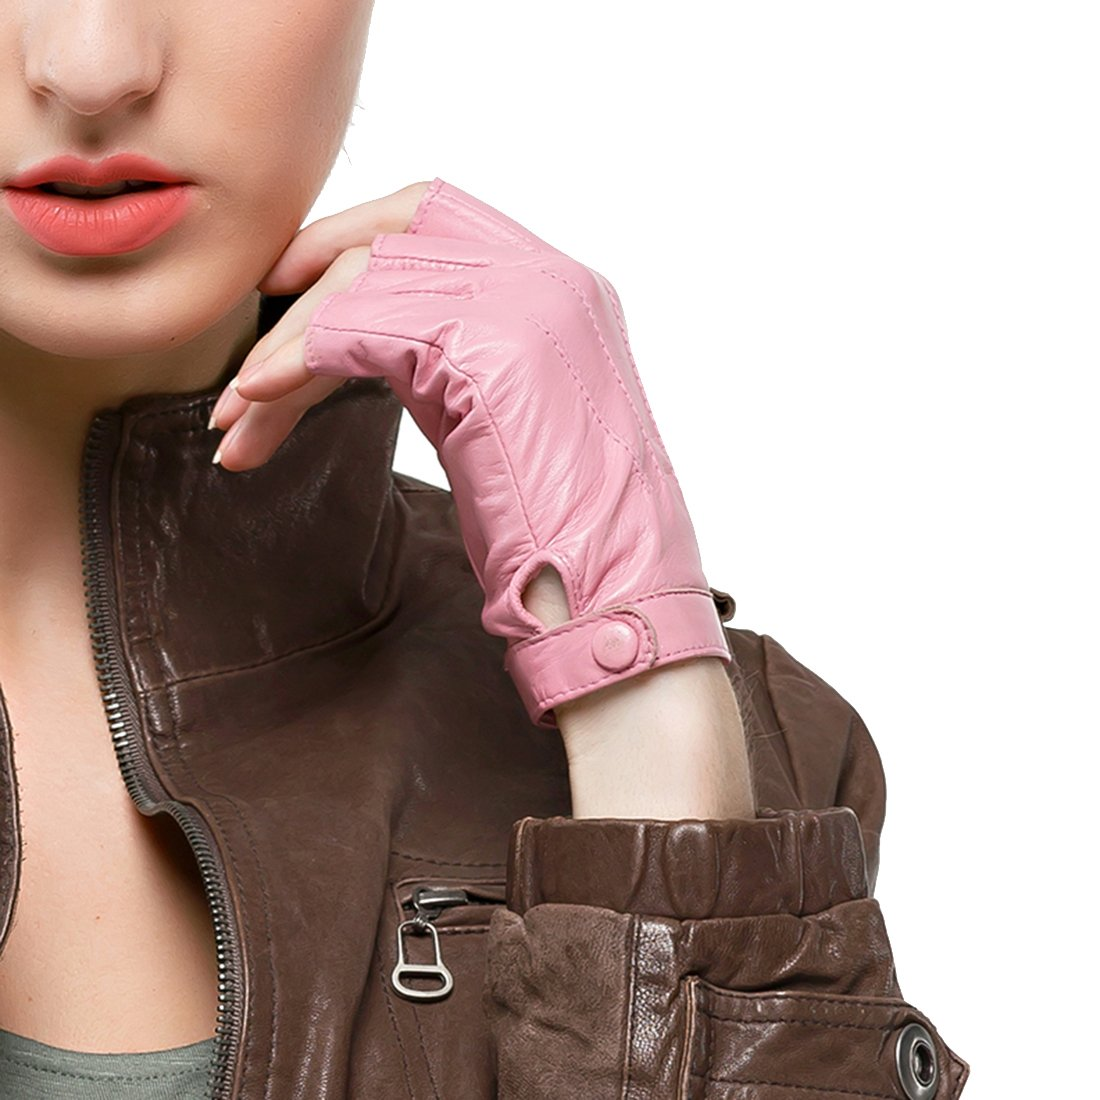 Nappaglo Women's Driving Leather Gloves Nappa Leather Half Finger Fingerless Gloves Fitness Lined Gloves for Driving Cycling Motorcycling (L (Palm Girth:7.5''-8''), Pink)